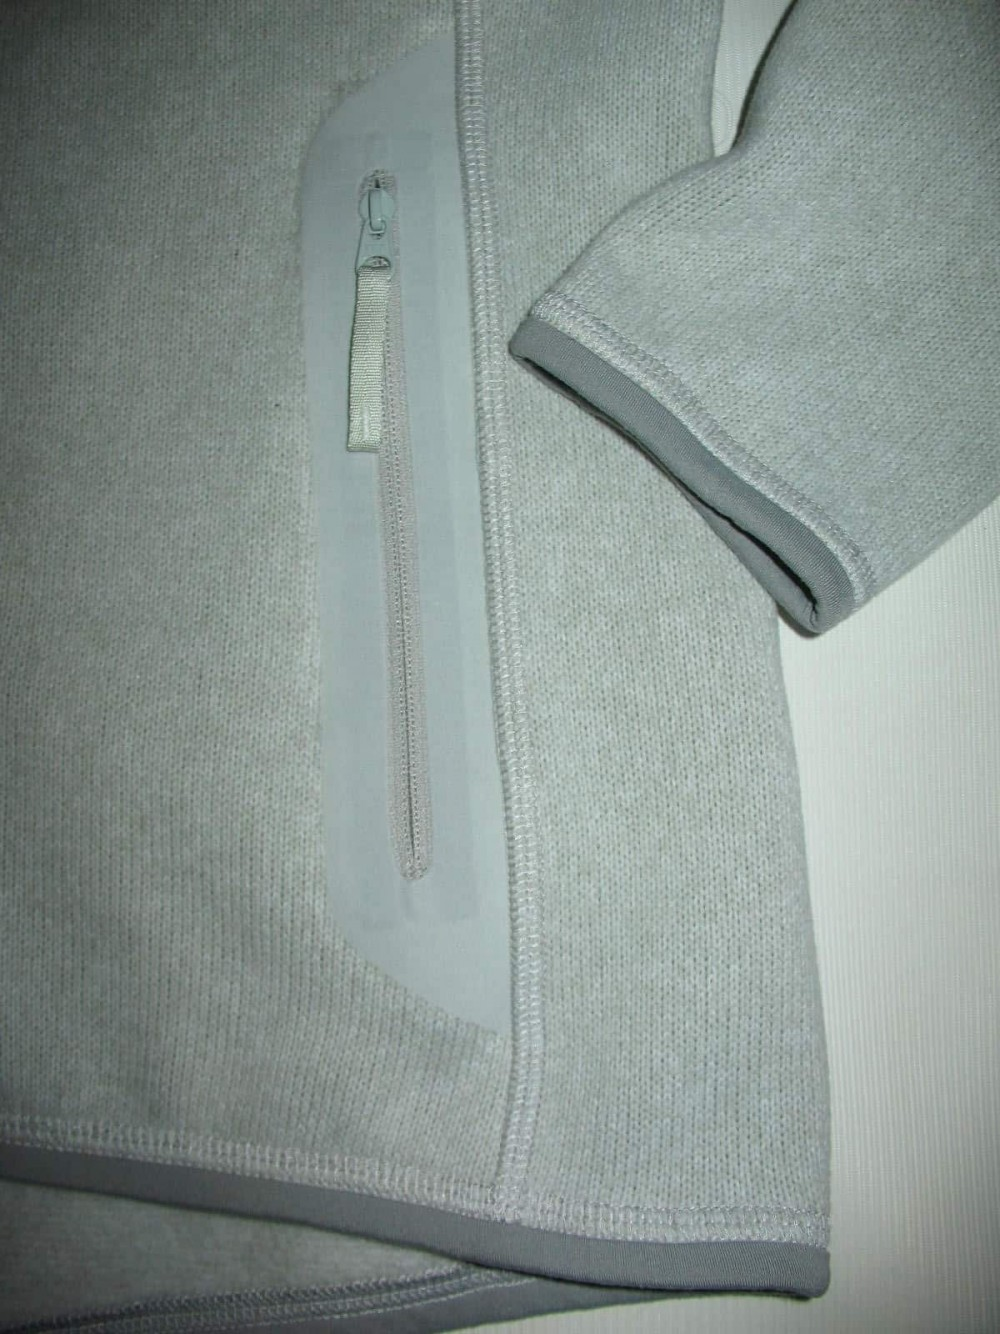 Кофта ARC'TERYX mica fleece jacket lady (размер S) - 7